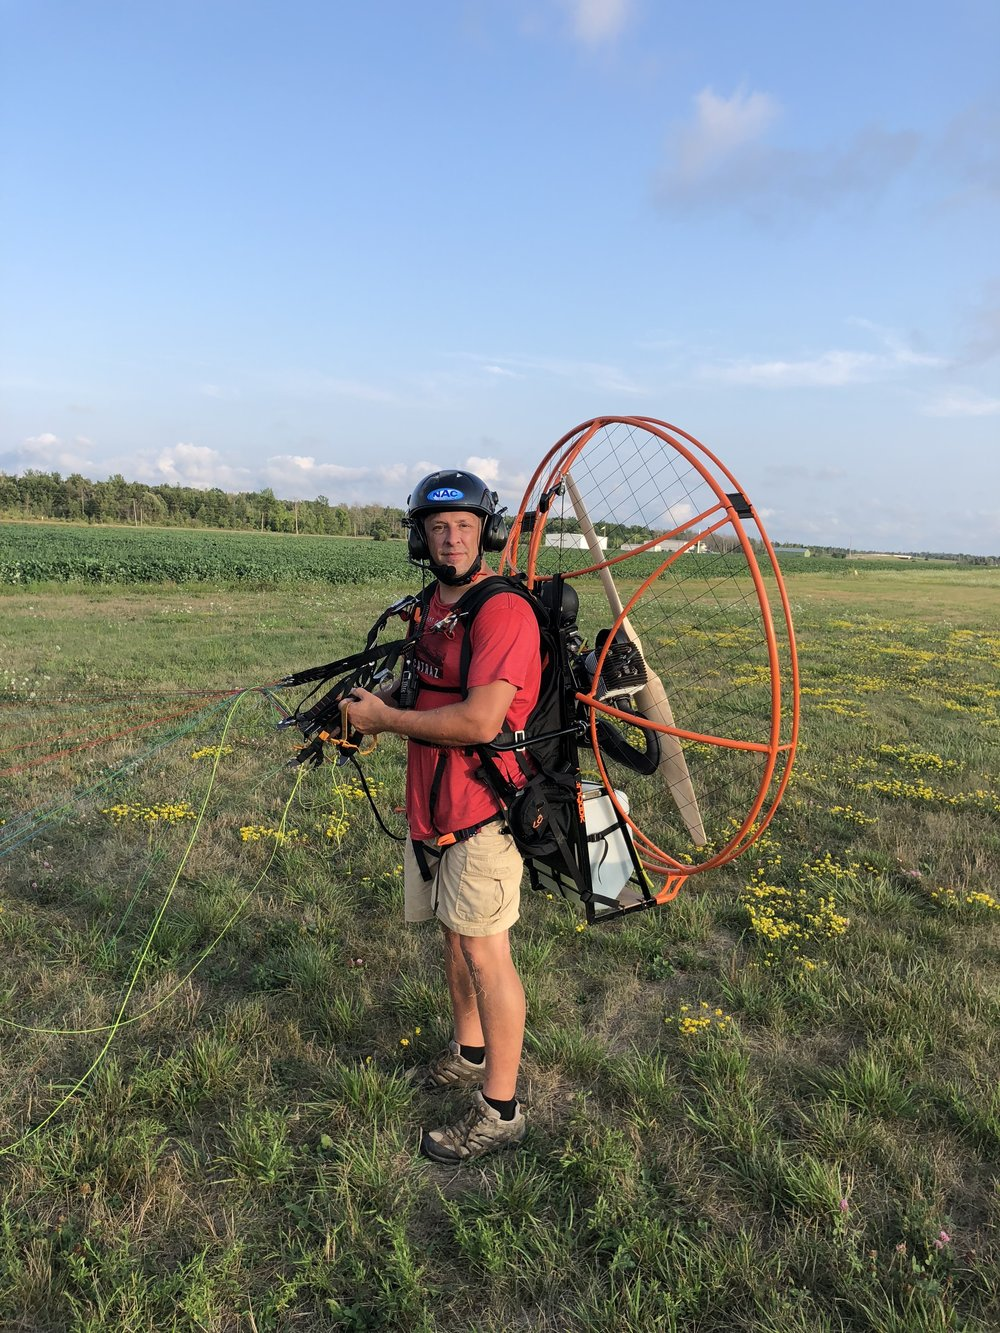 Photo by Andre Zeman, Owner of Powered Paragliding Ontario - Pre-flight smiles